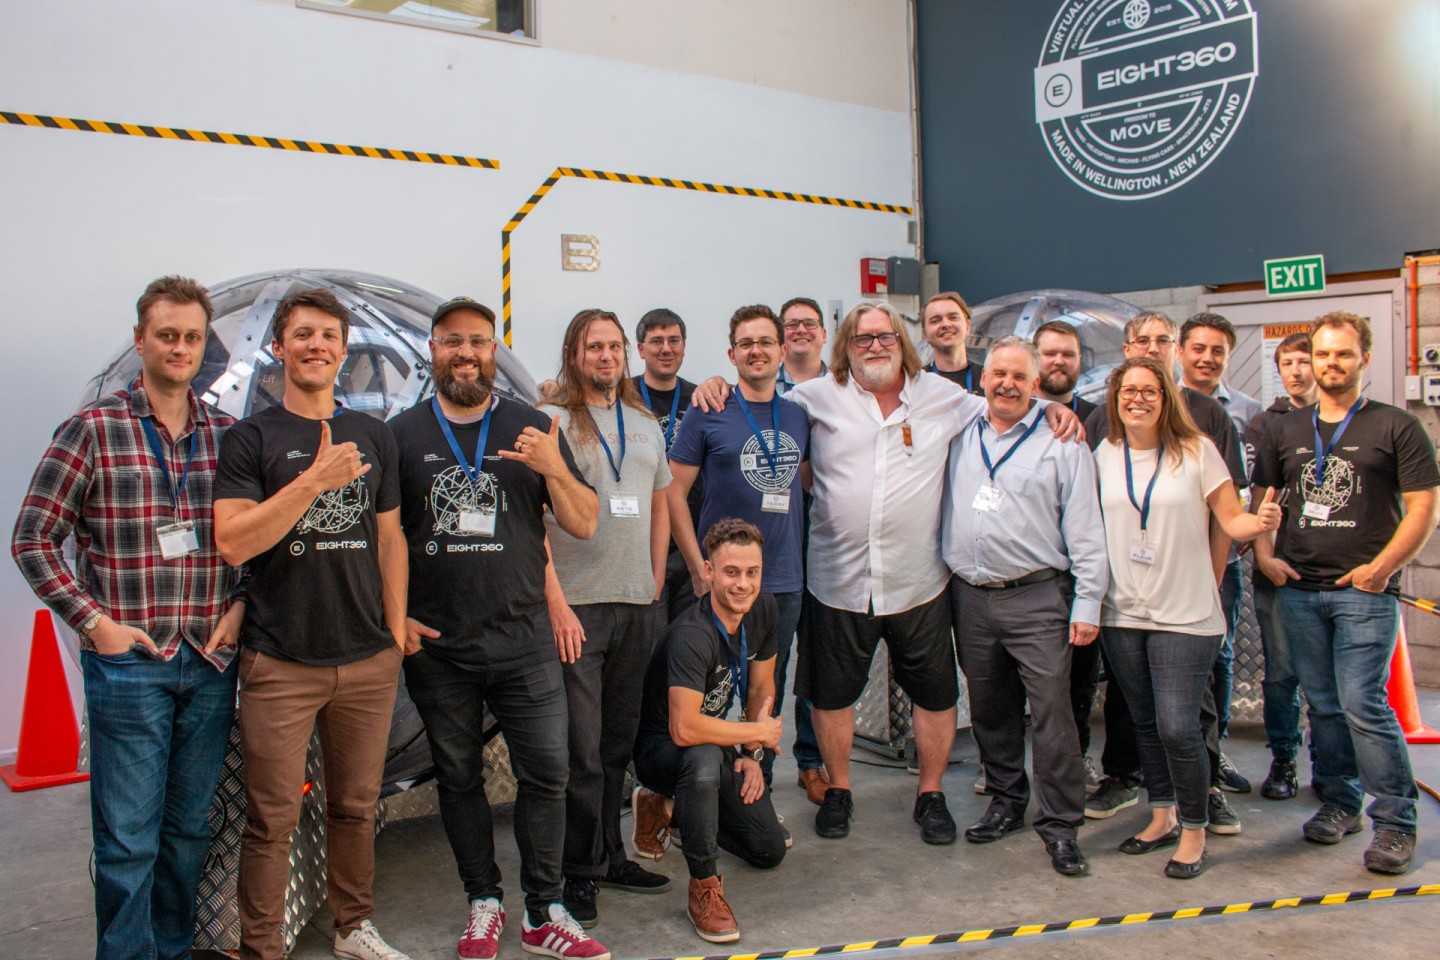 The Eight360 team was just a touch stoked when Valve's Gabe Newell dropped by to check out the Nova system